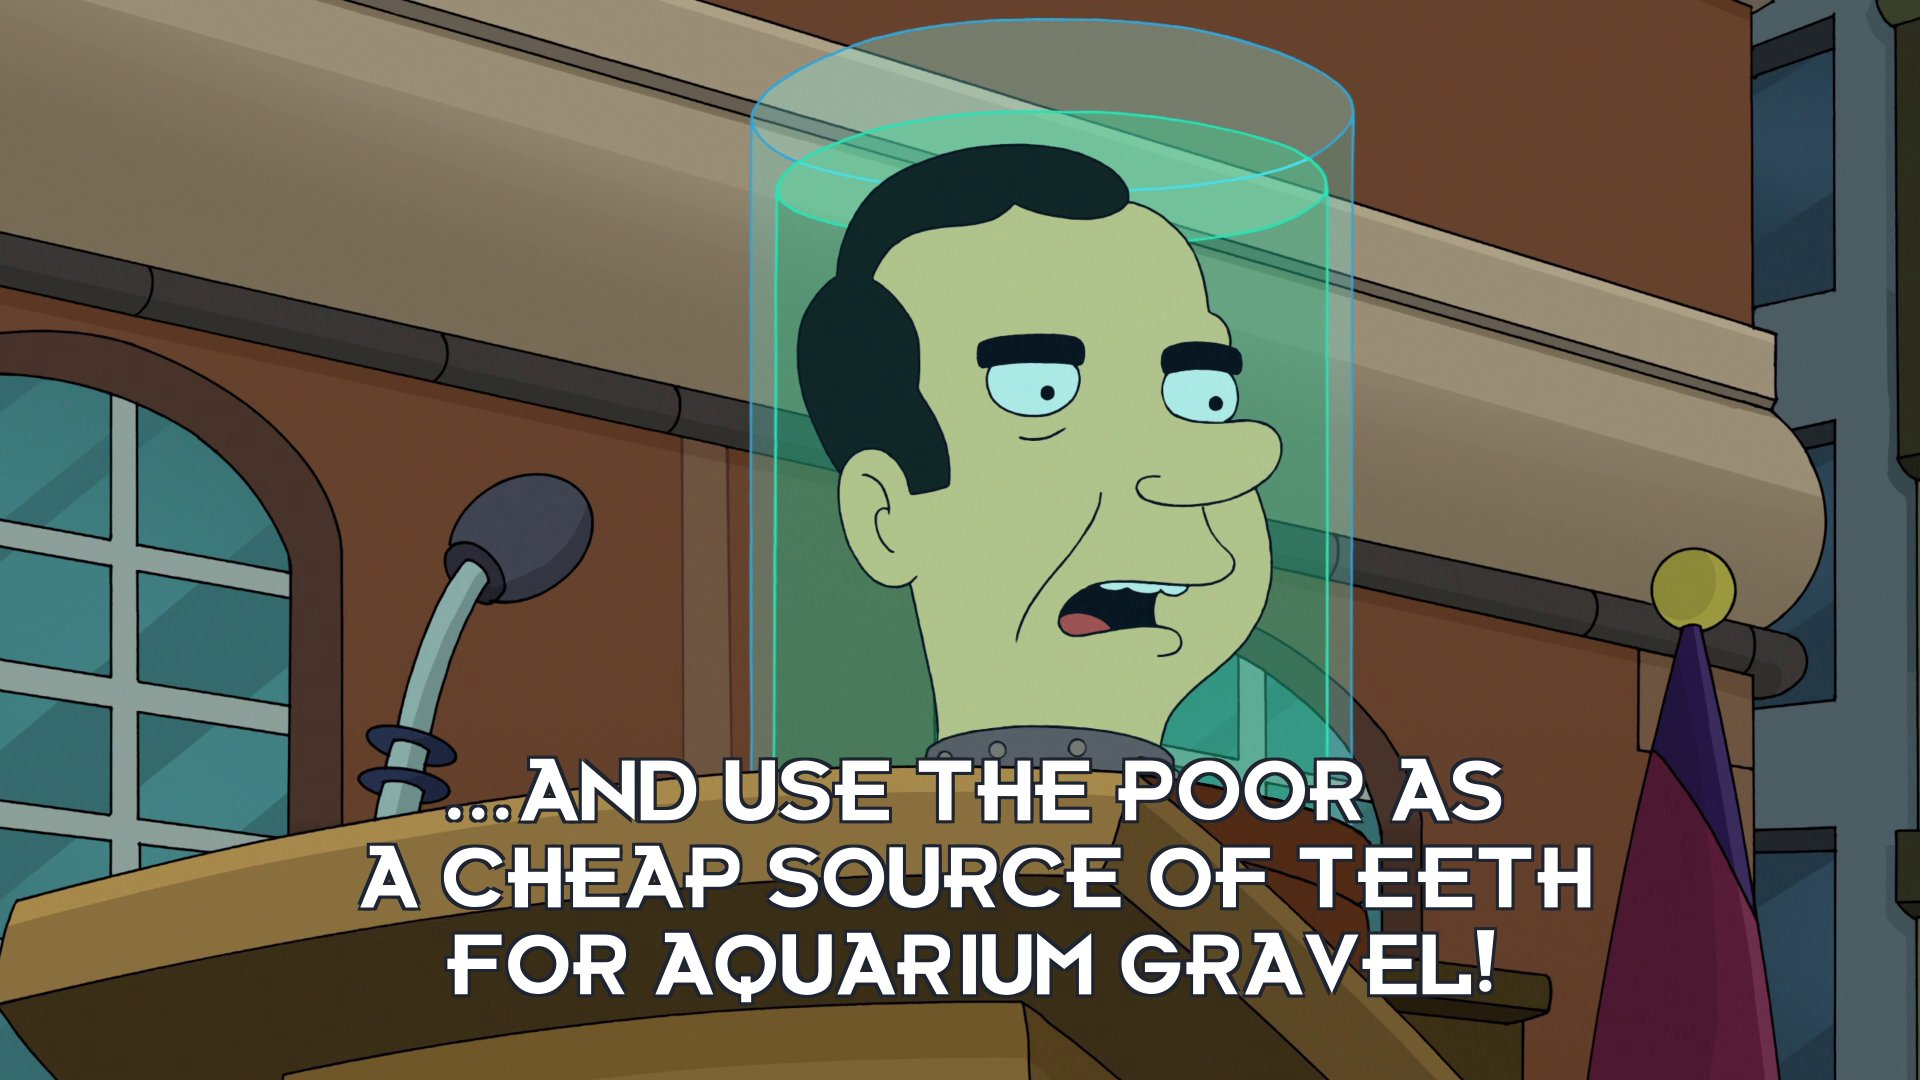 Richard Nixon's head: ...and use the poor as a cheap source of teeth for aquarium gravel!